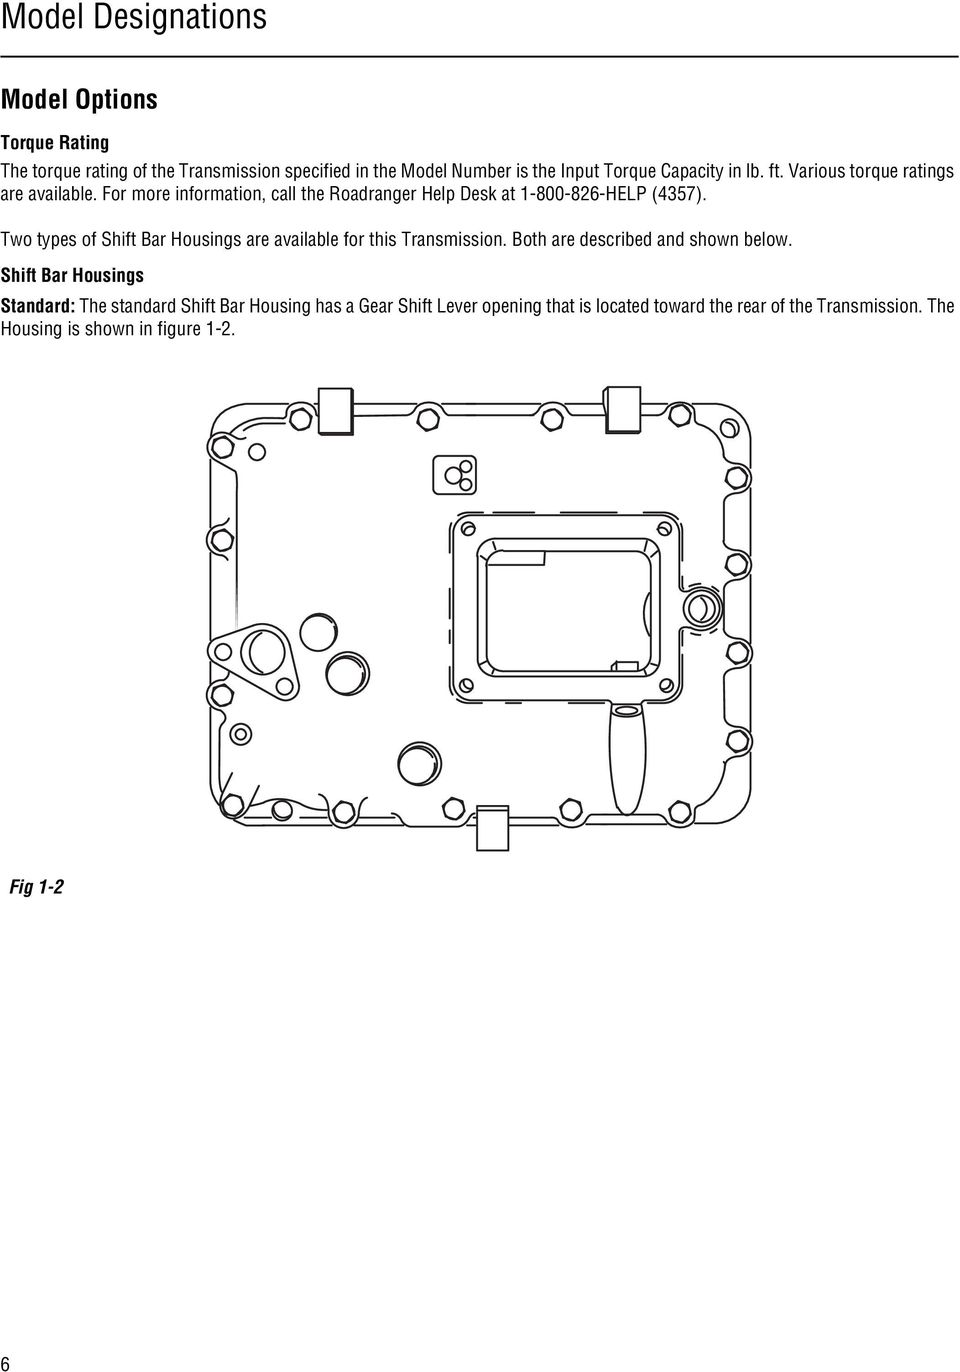 hight resolution of two types of shift bar housings are available for this transmission both are described and